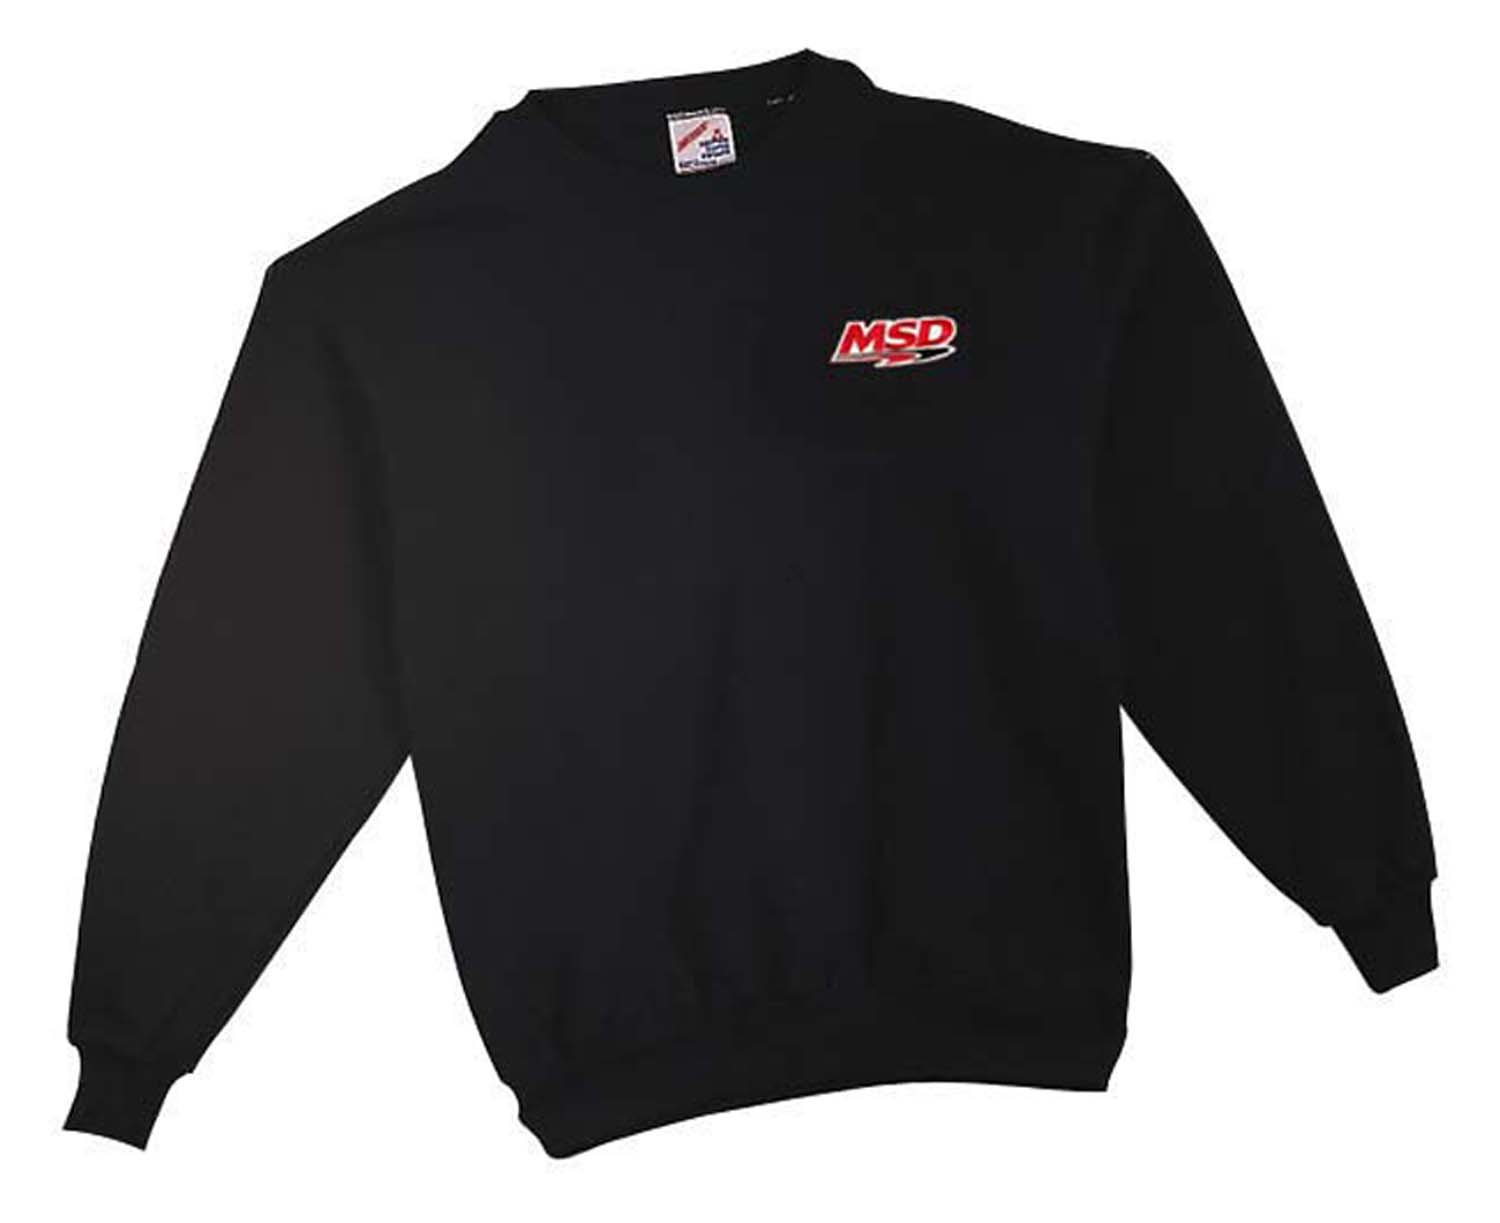 9385 - MSD Racing Sweatshirt, Black, Large Image